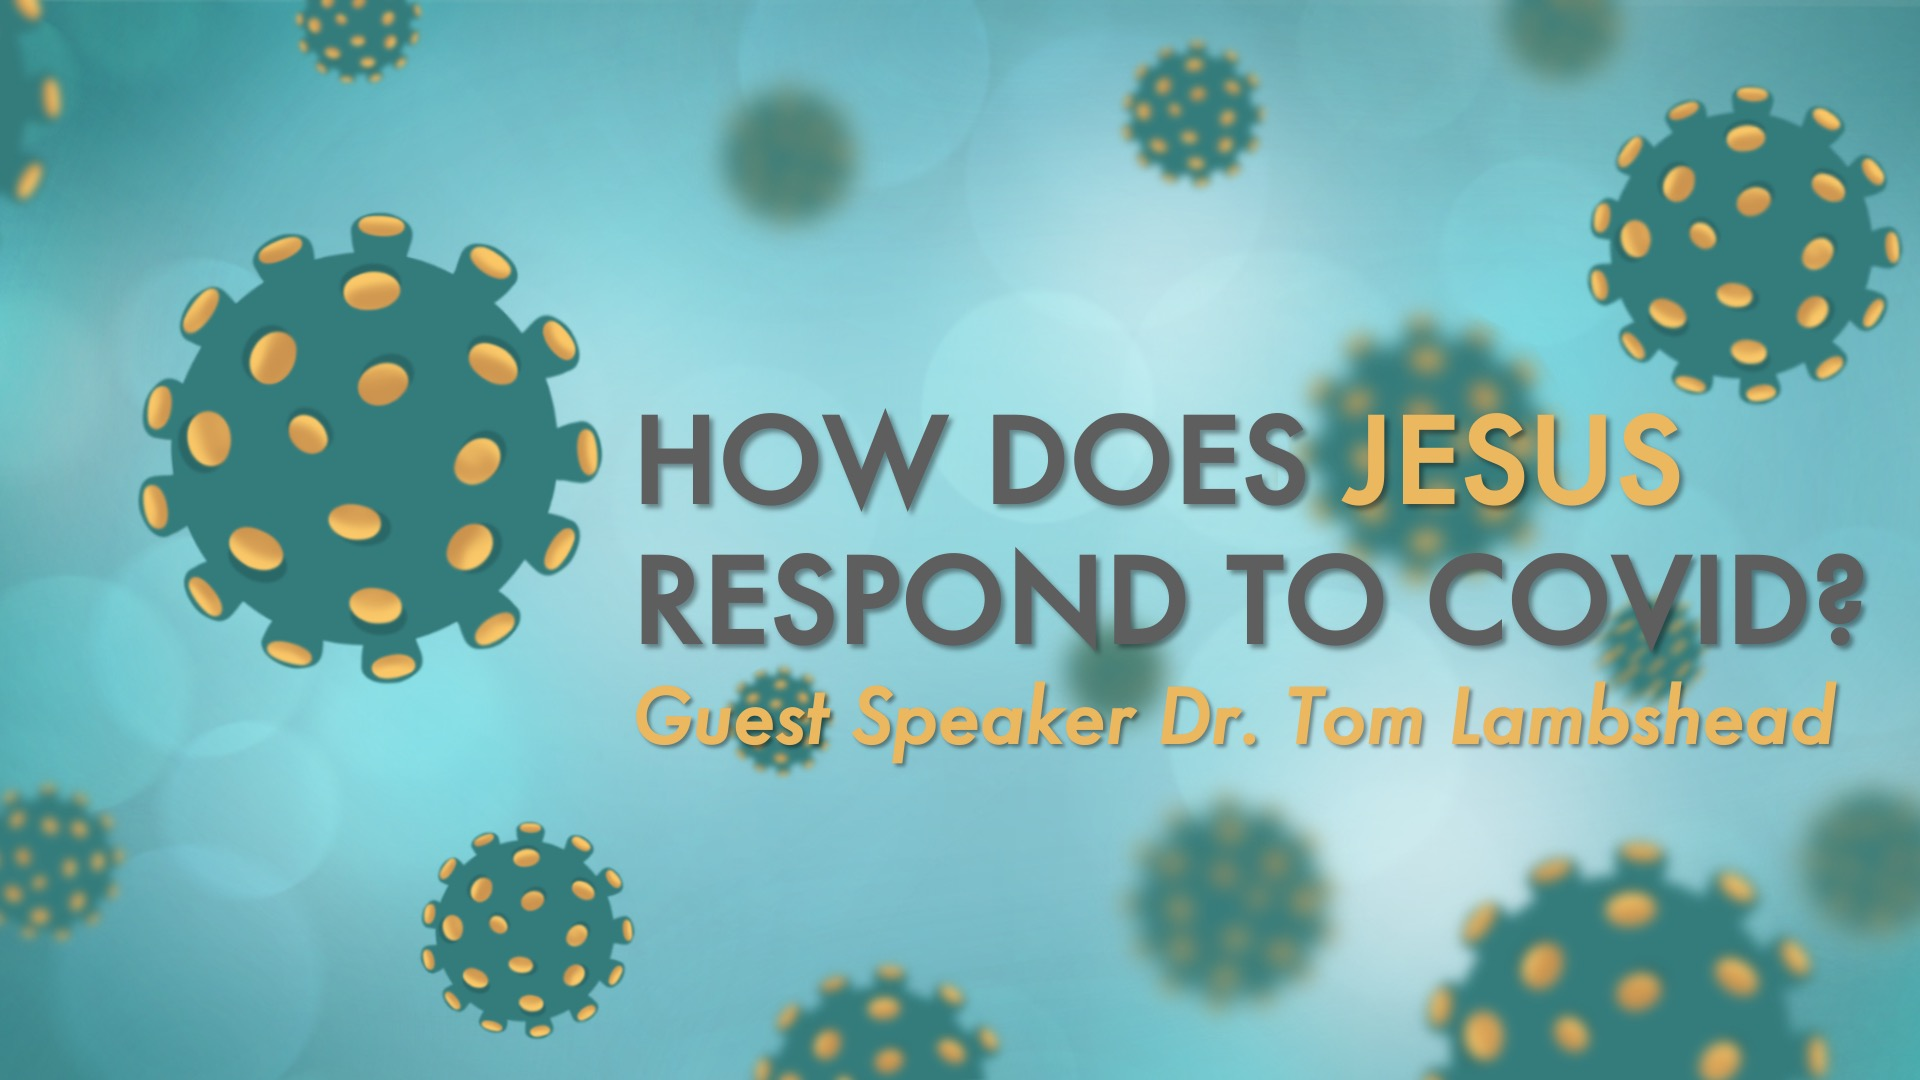 How Would Jesus Respond to Covid?